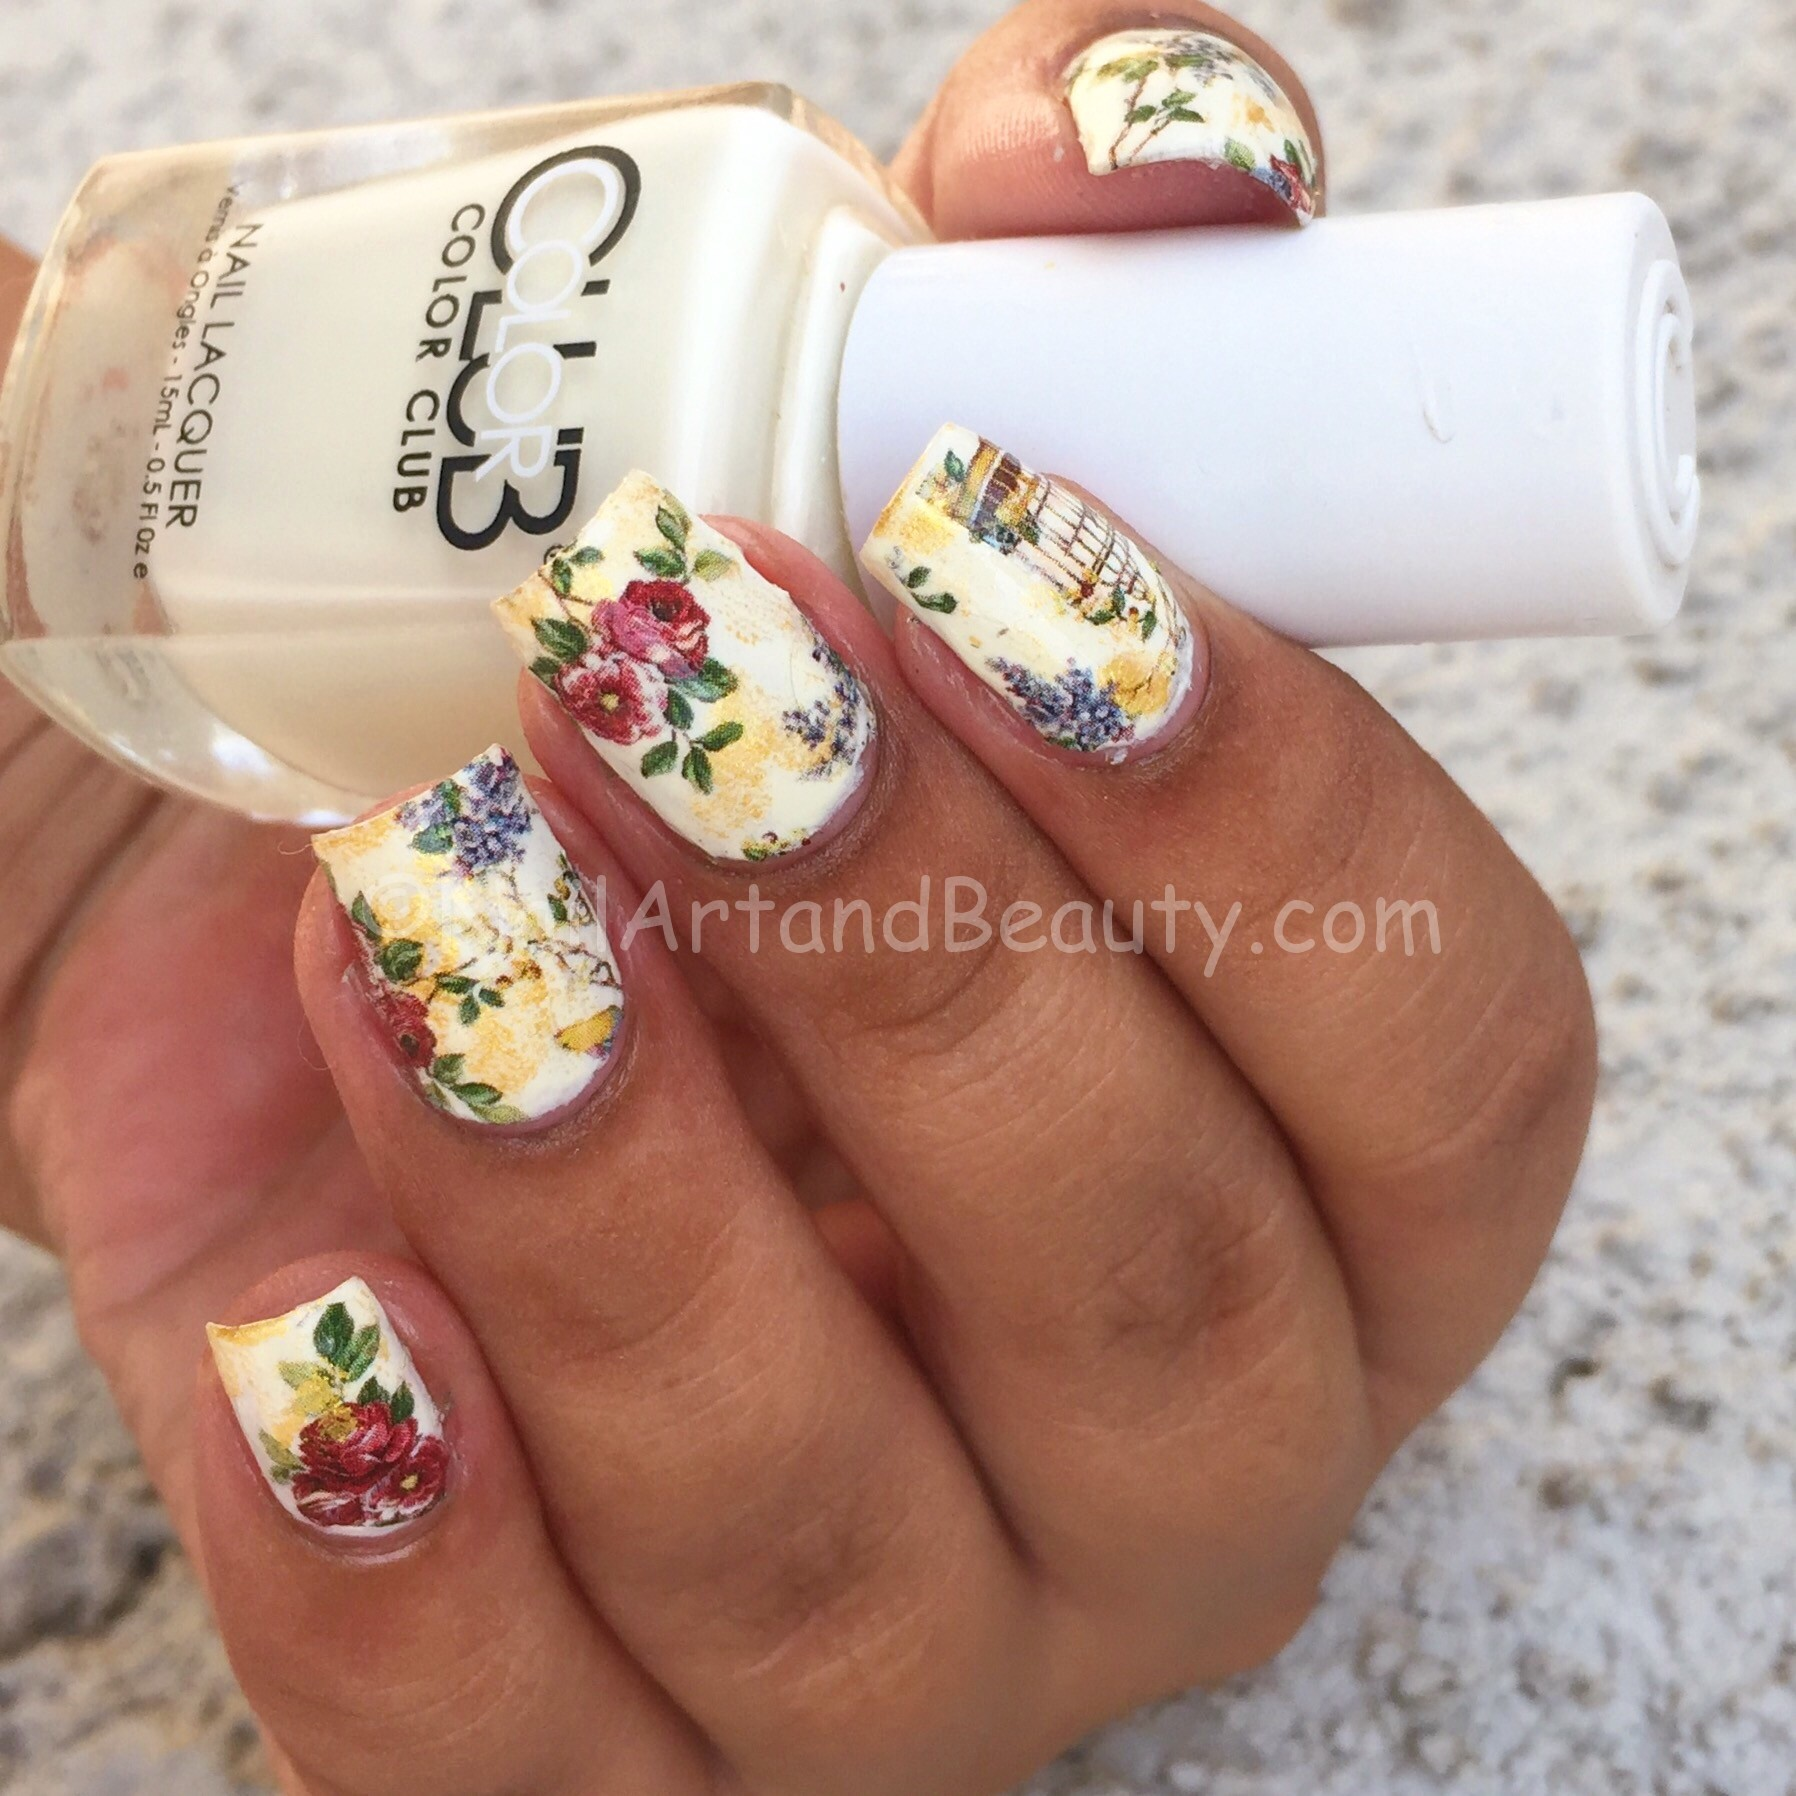 Vintage Rose and Caged Bird Nails